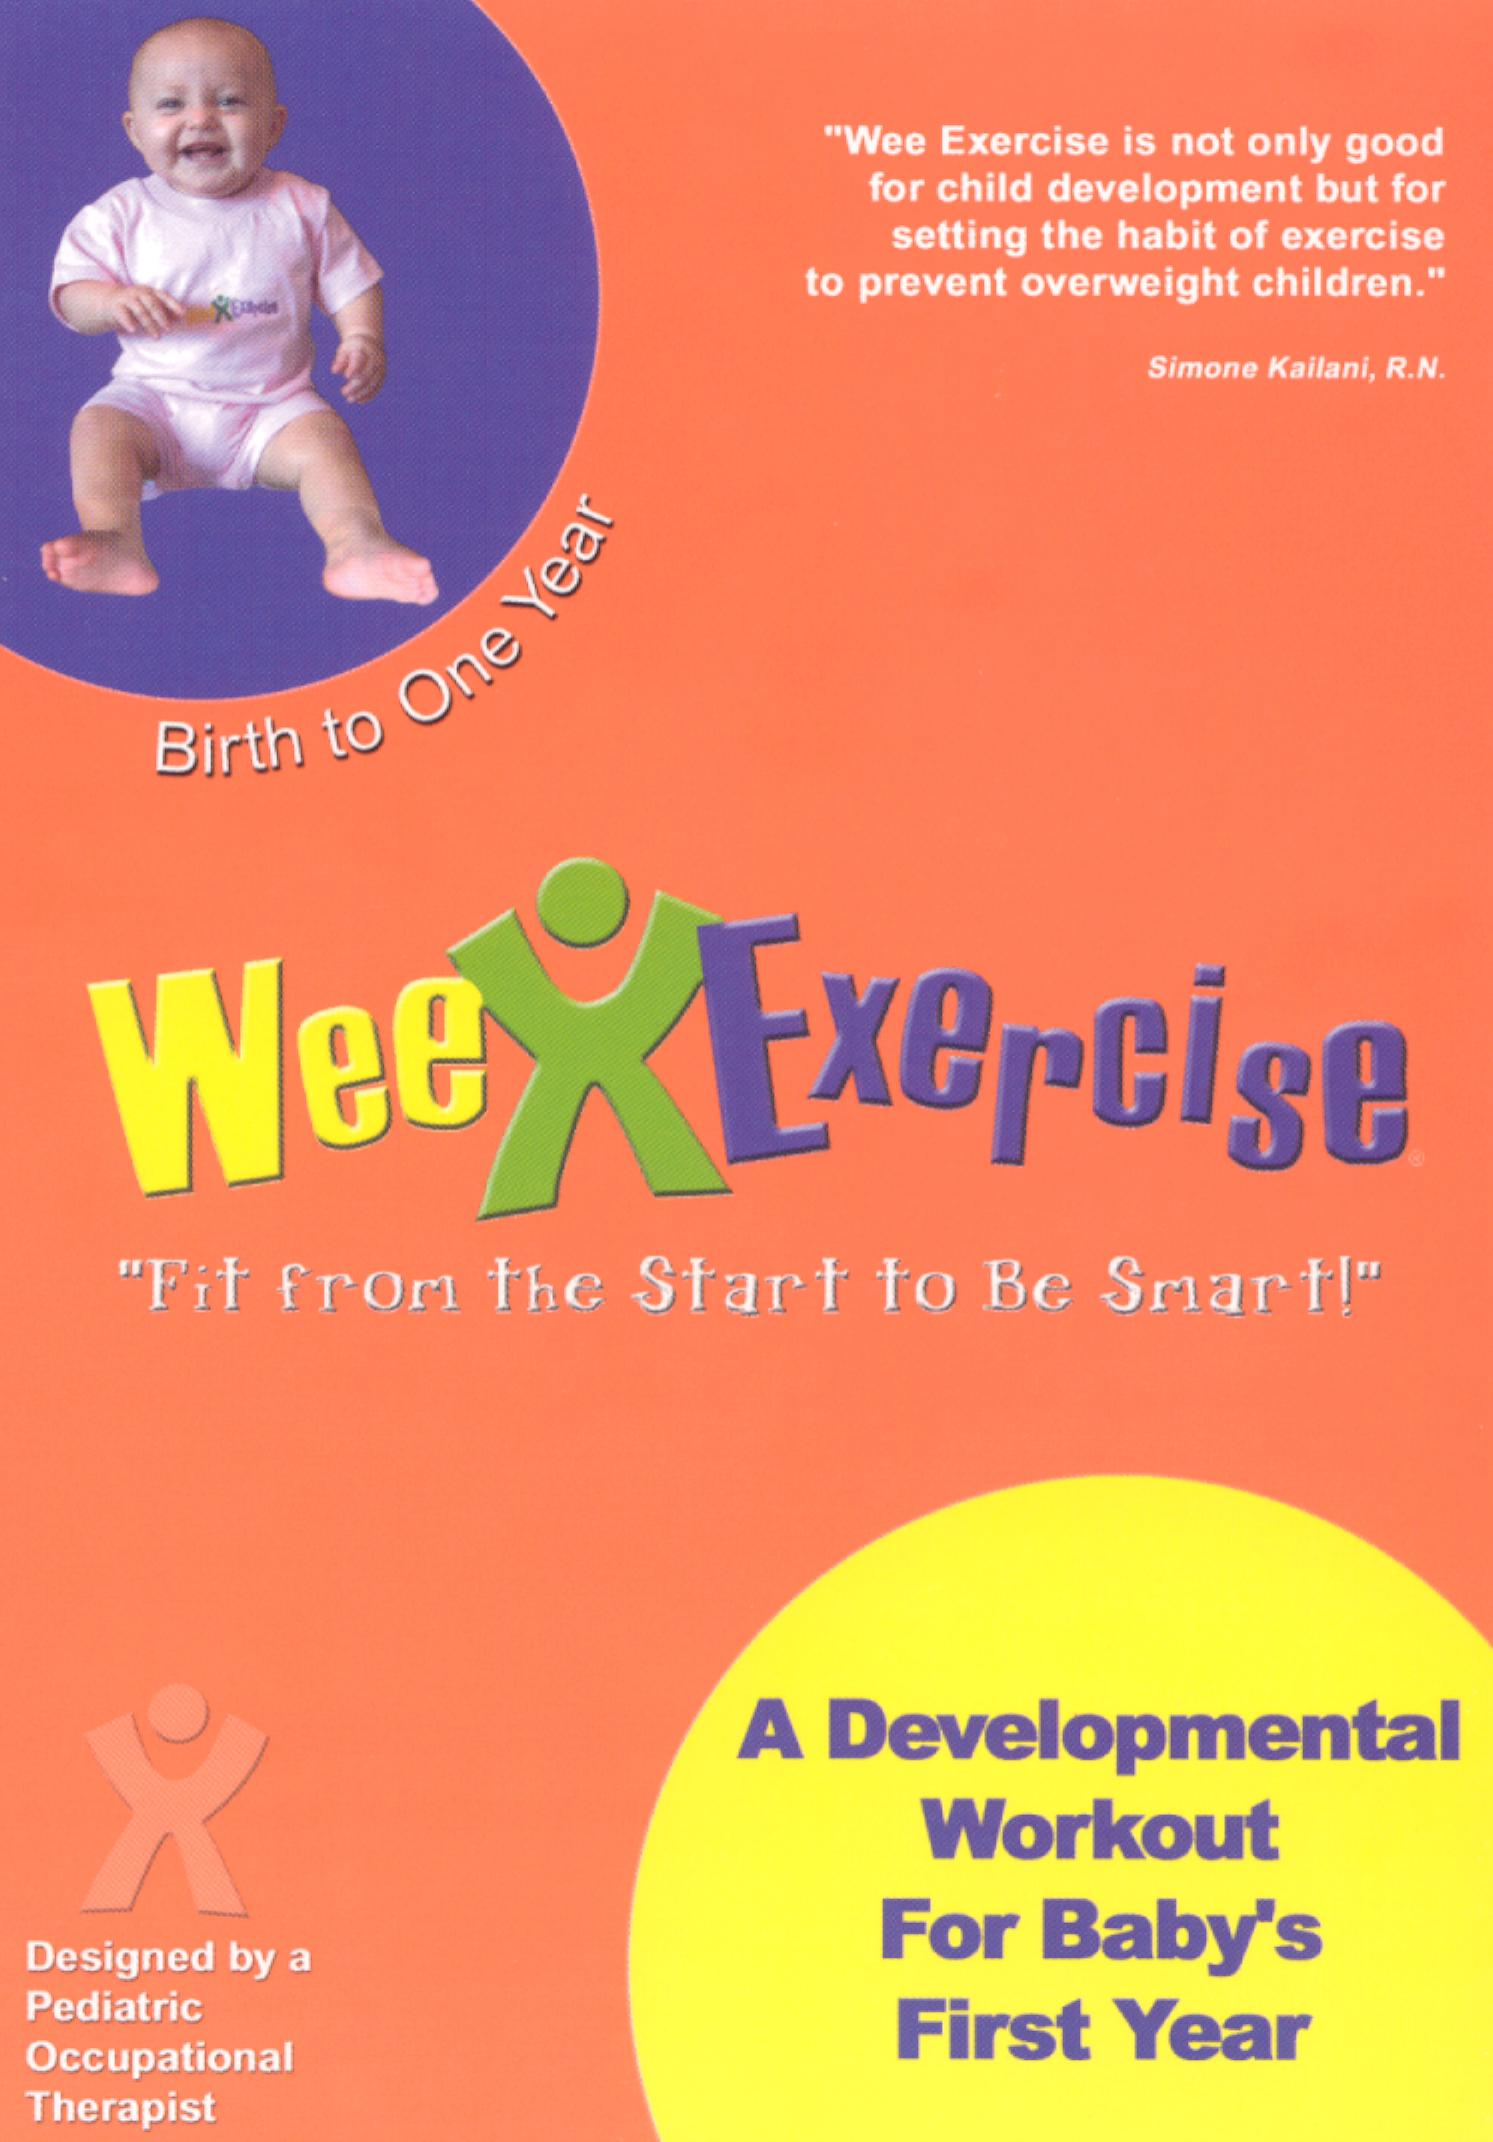 Wee Exercise